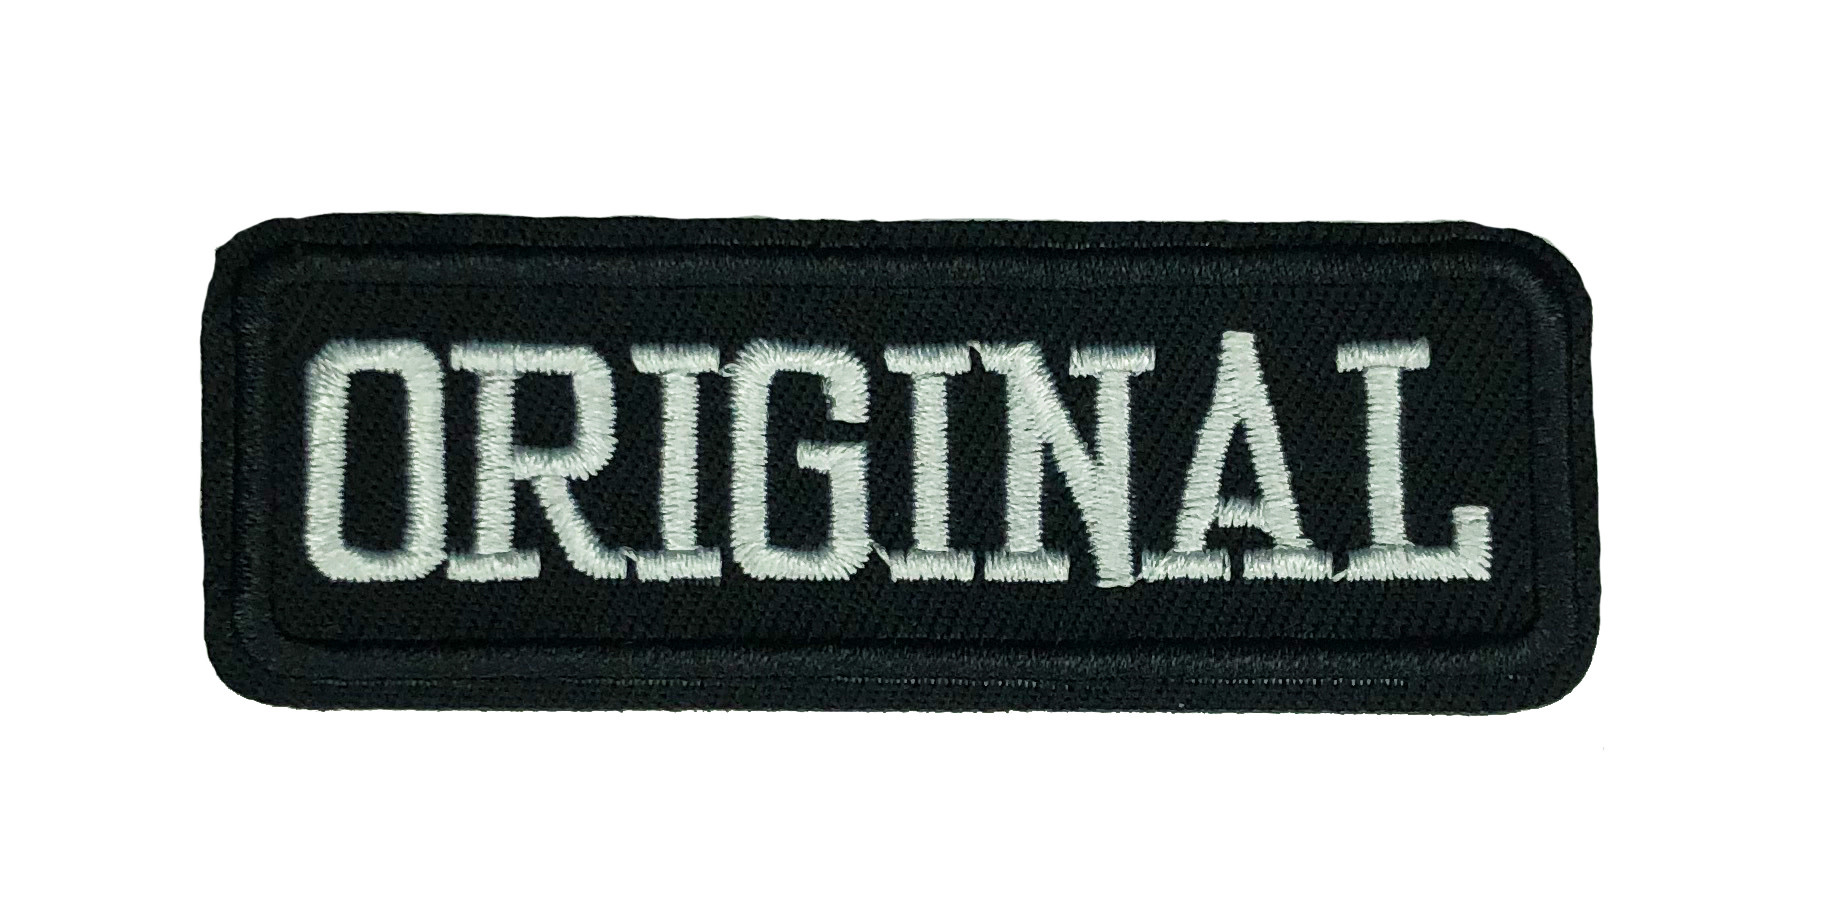 THE SHOP 6 STATEMENT PATCHES-9